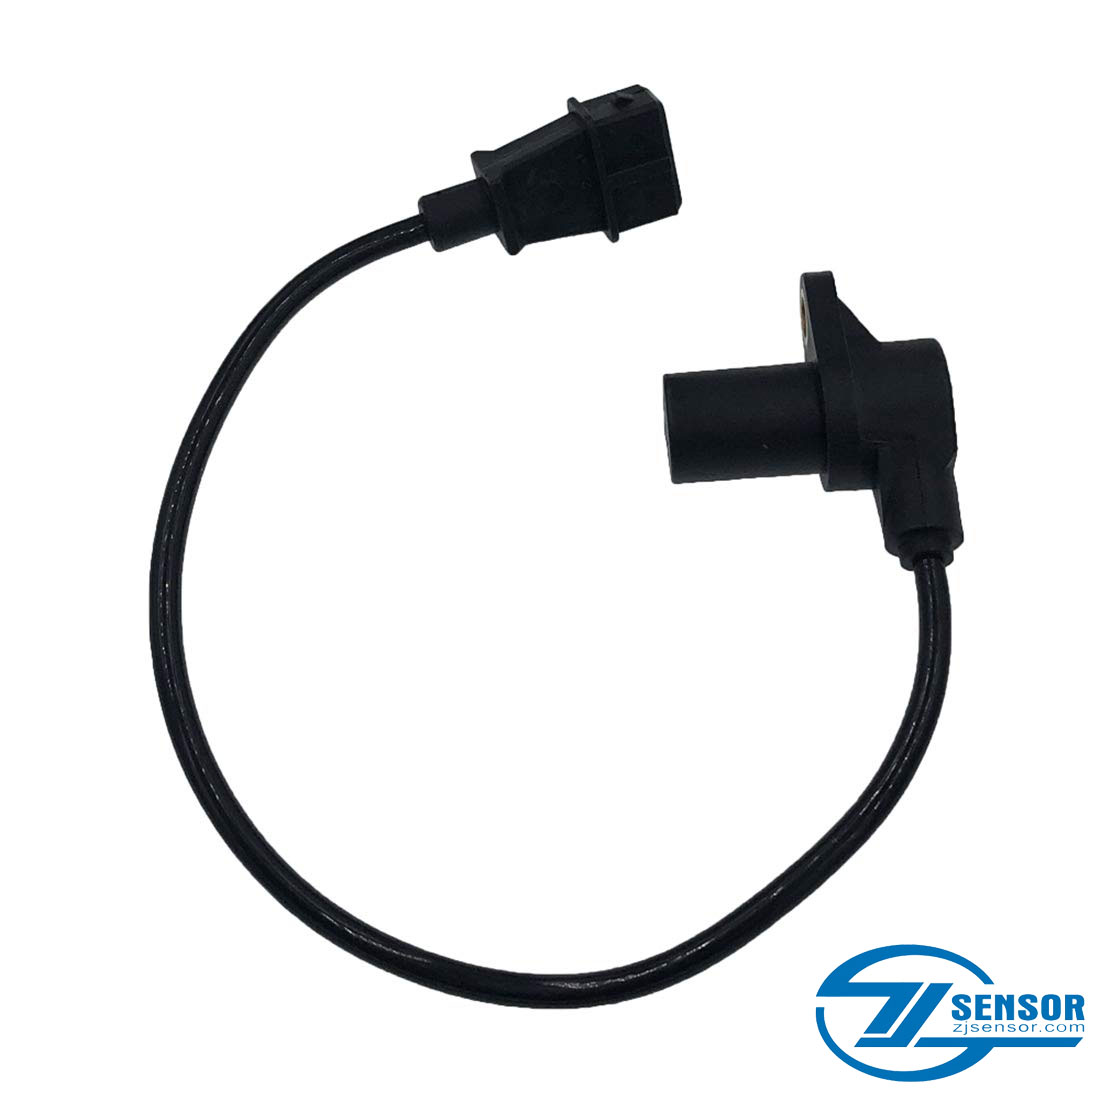 0231210104/pc414/7766252/OK9A018891 Auto Car Crankshaft Position Sensor For Fiat Scania